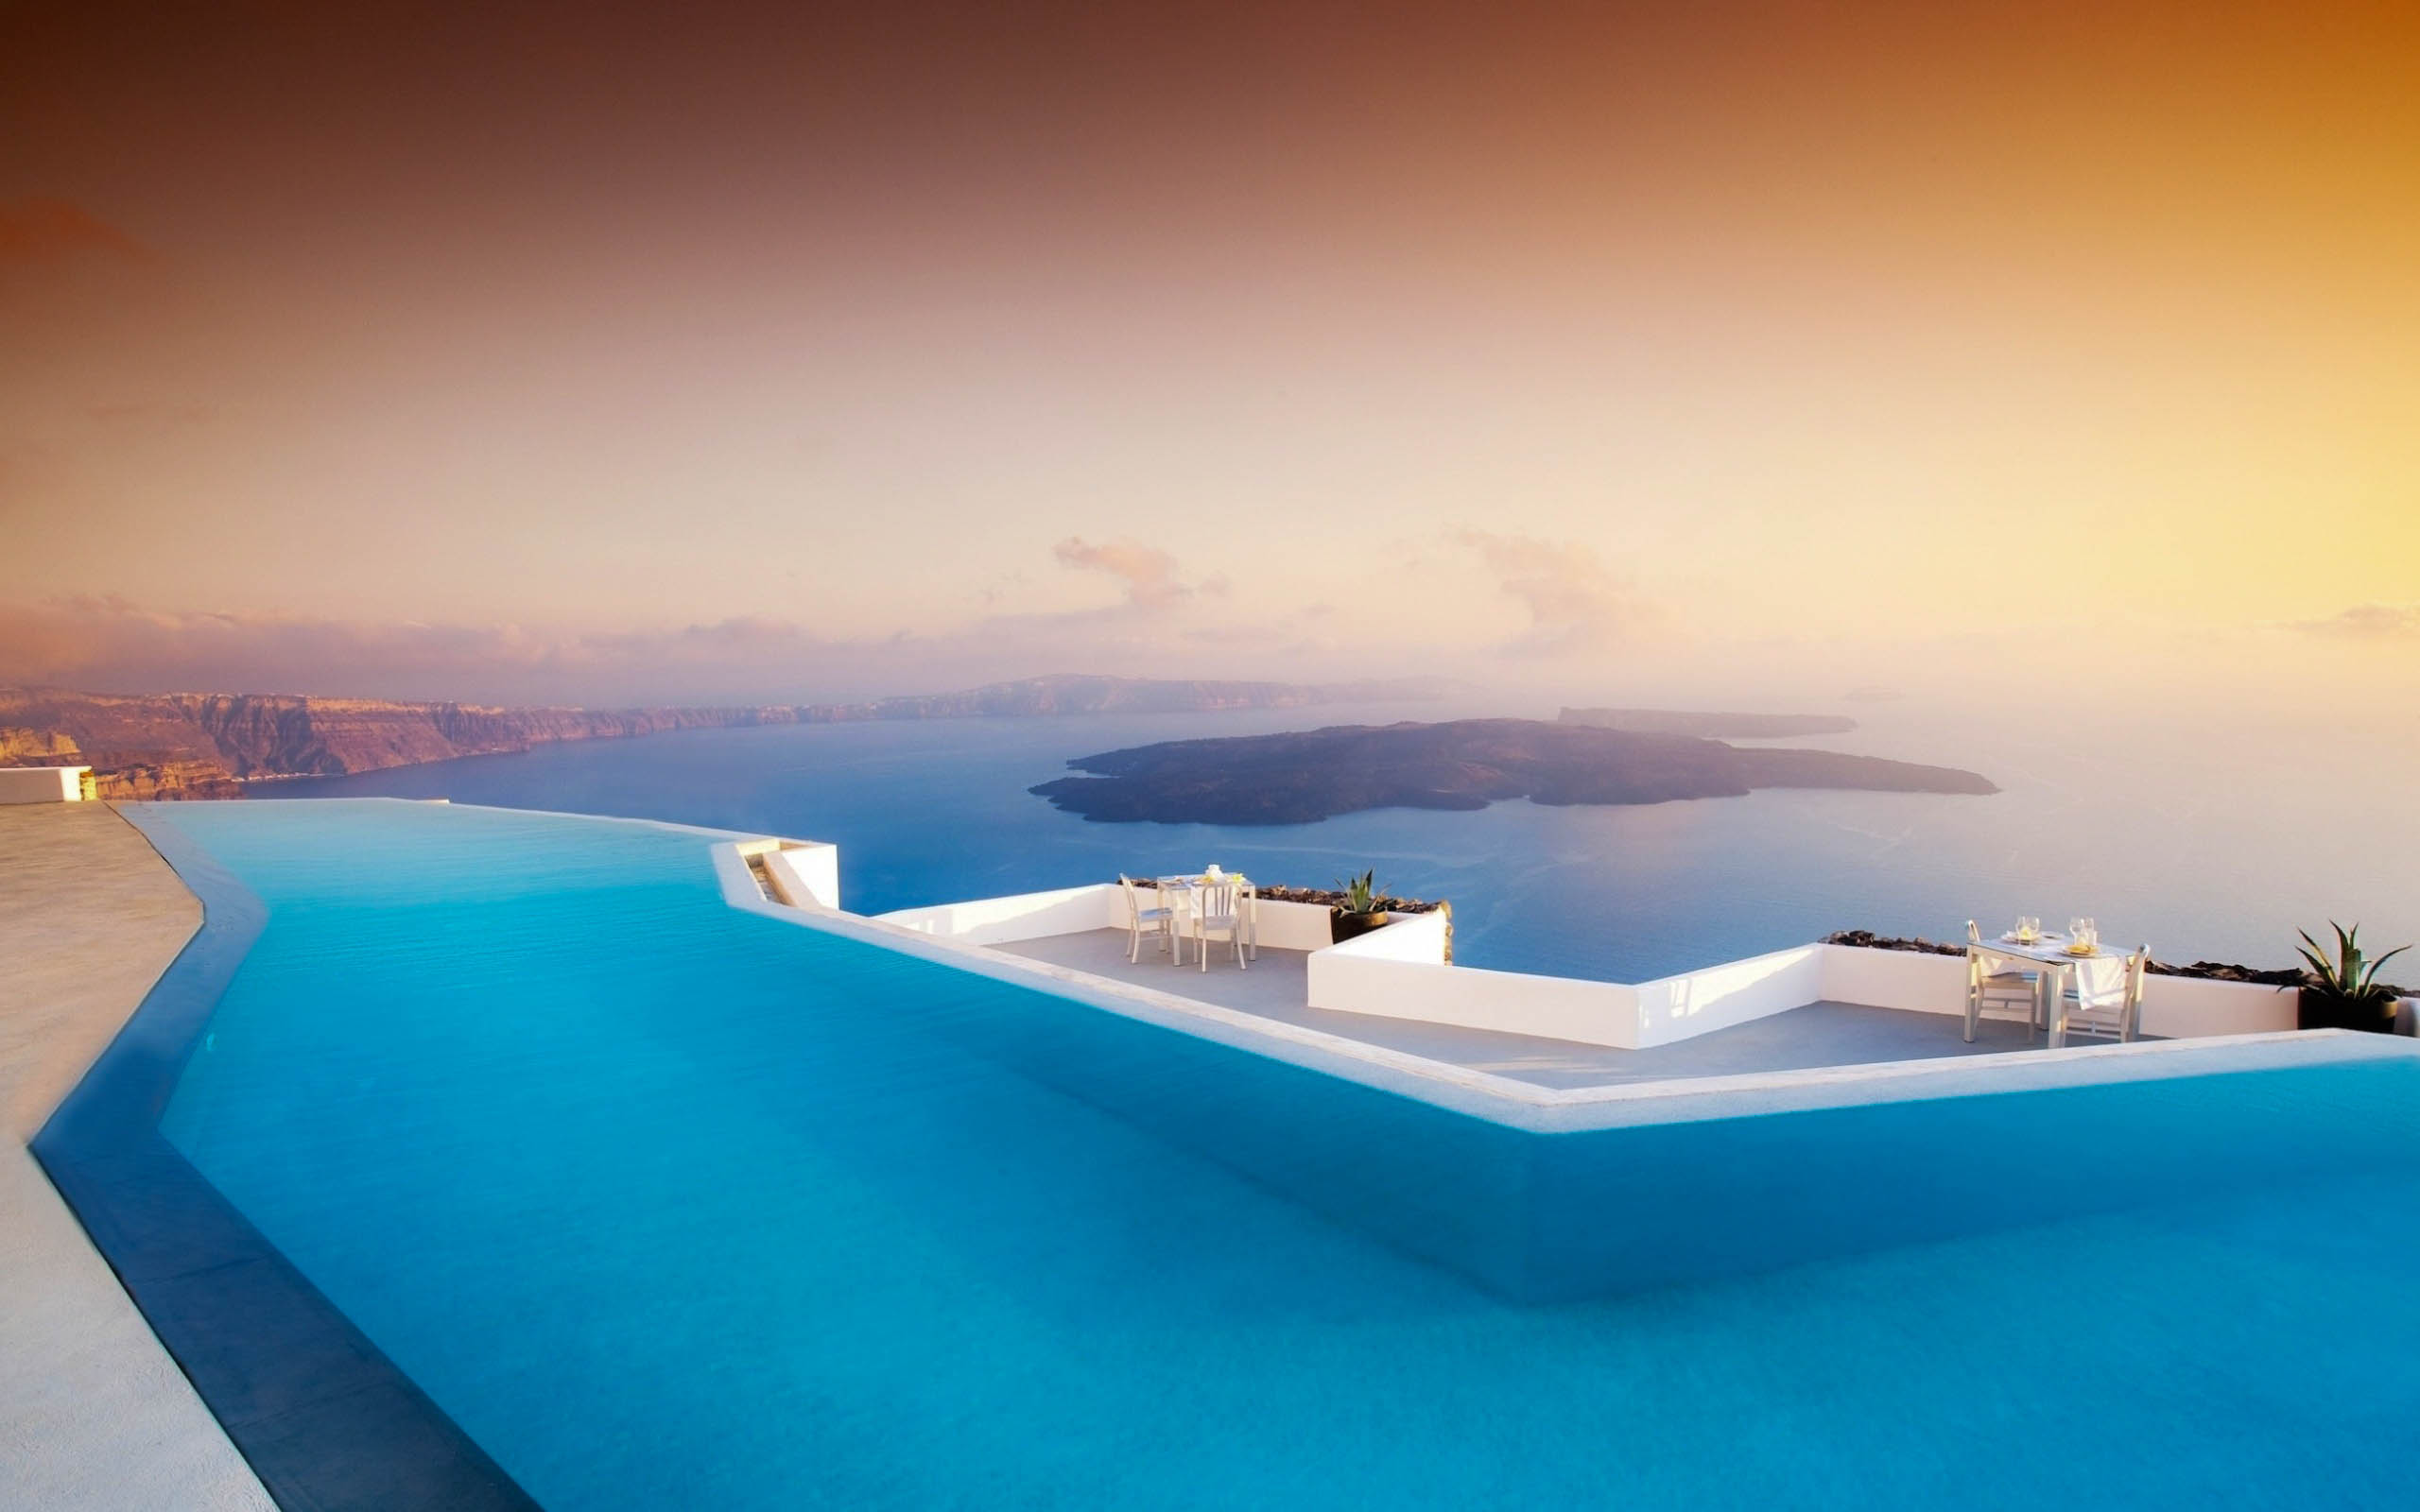 Santorini Hd Wallpaper Santorini Amazing Hd Wallpapers   Santorini 2560x1600